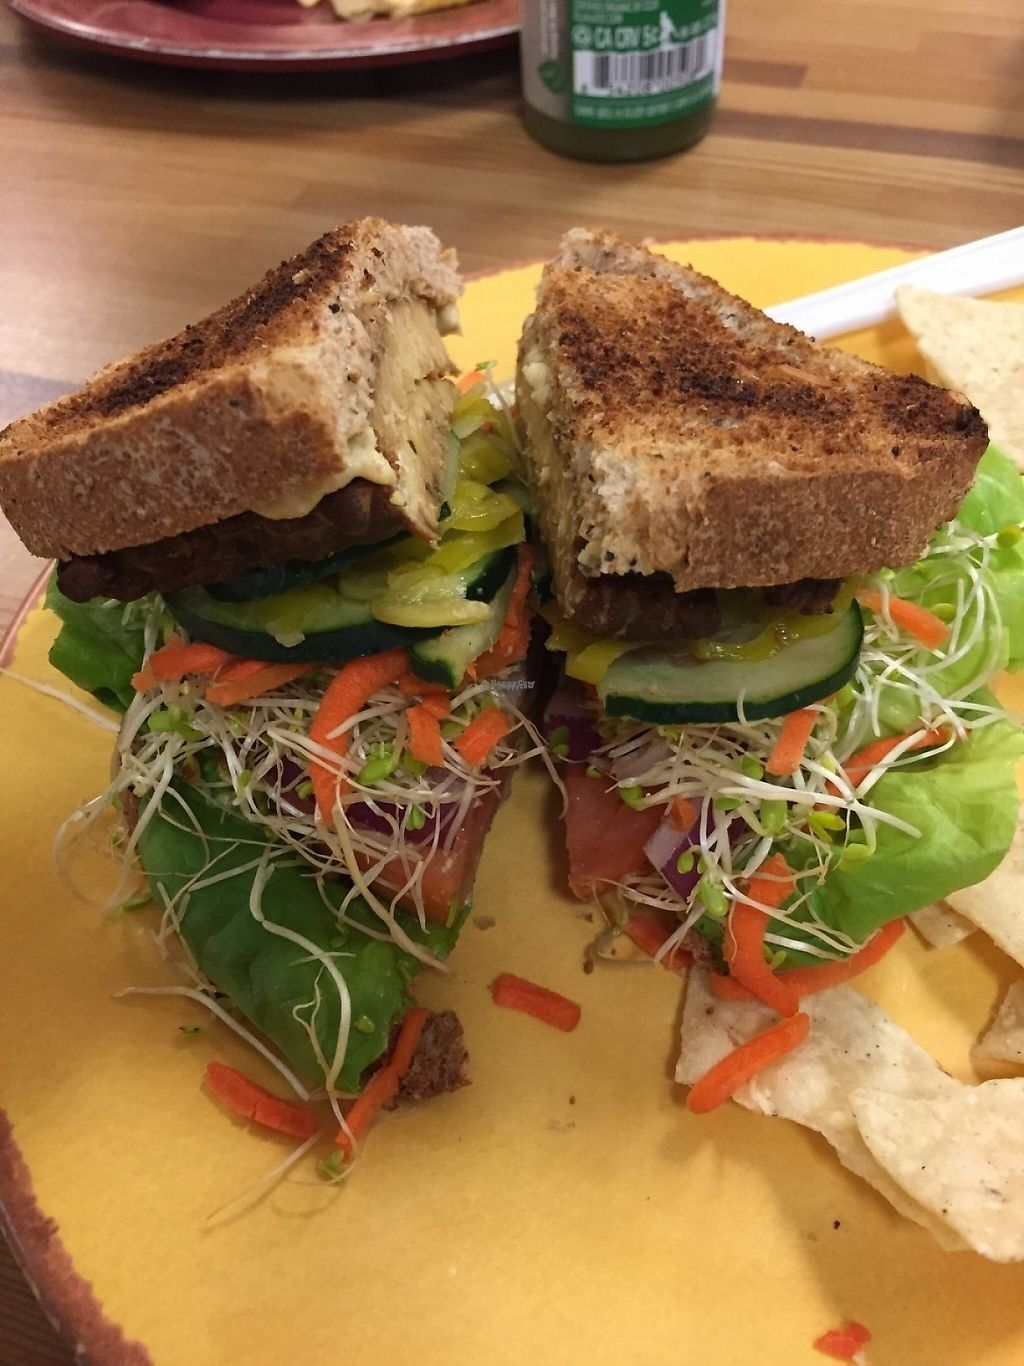 "Photo of Sunflower Natural Food Store and Deli  by <a href=""/members/profile/SFRobbie"">SFRobbie</a> <br/>Overflowing tempeh burger <br/> December 10, 2016  - <a href='/contact/abuse/image/4613/198840'>Report</a>"